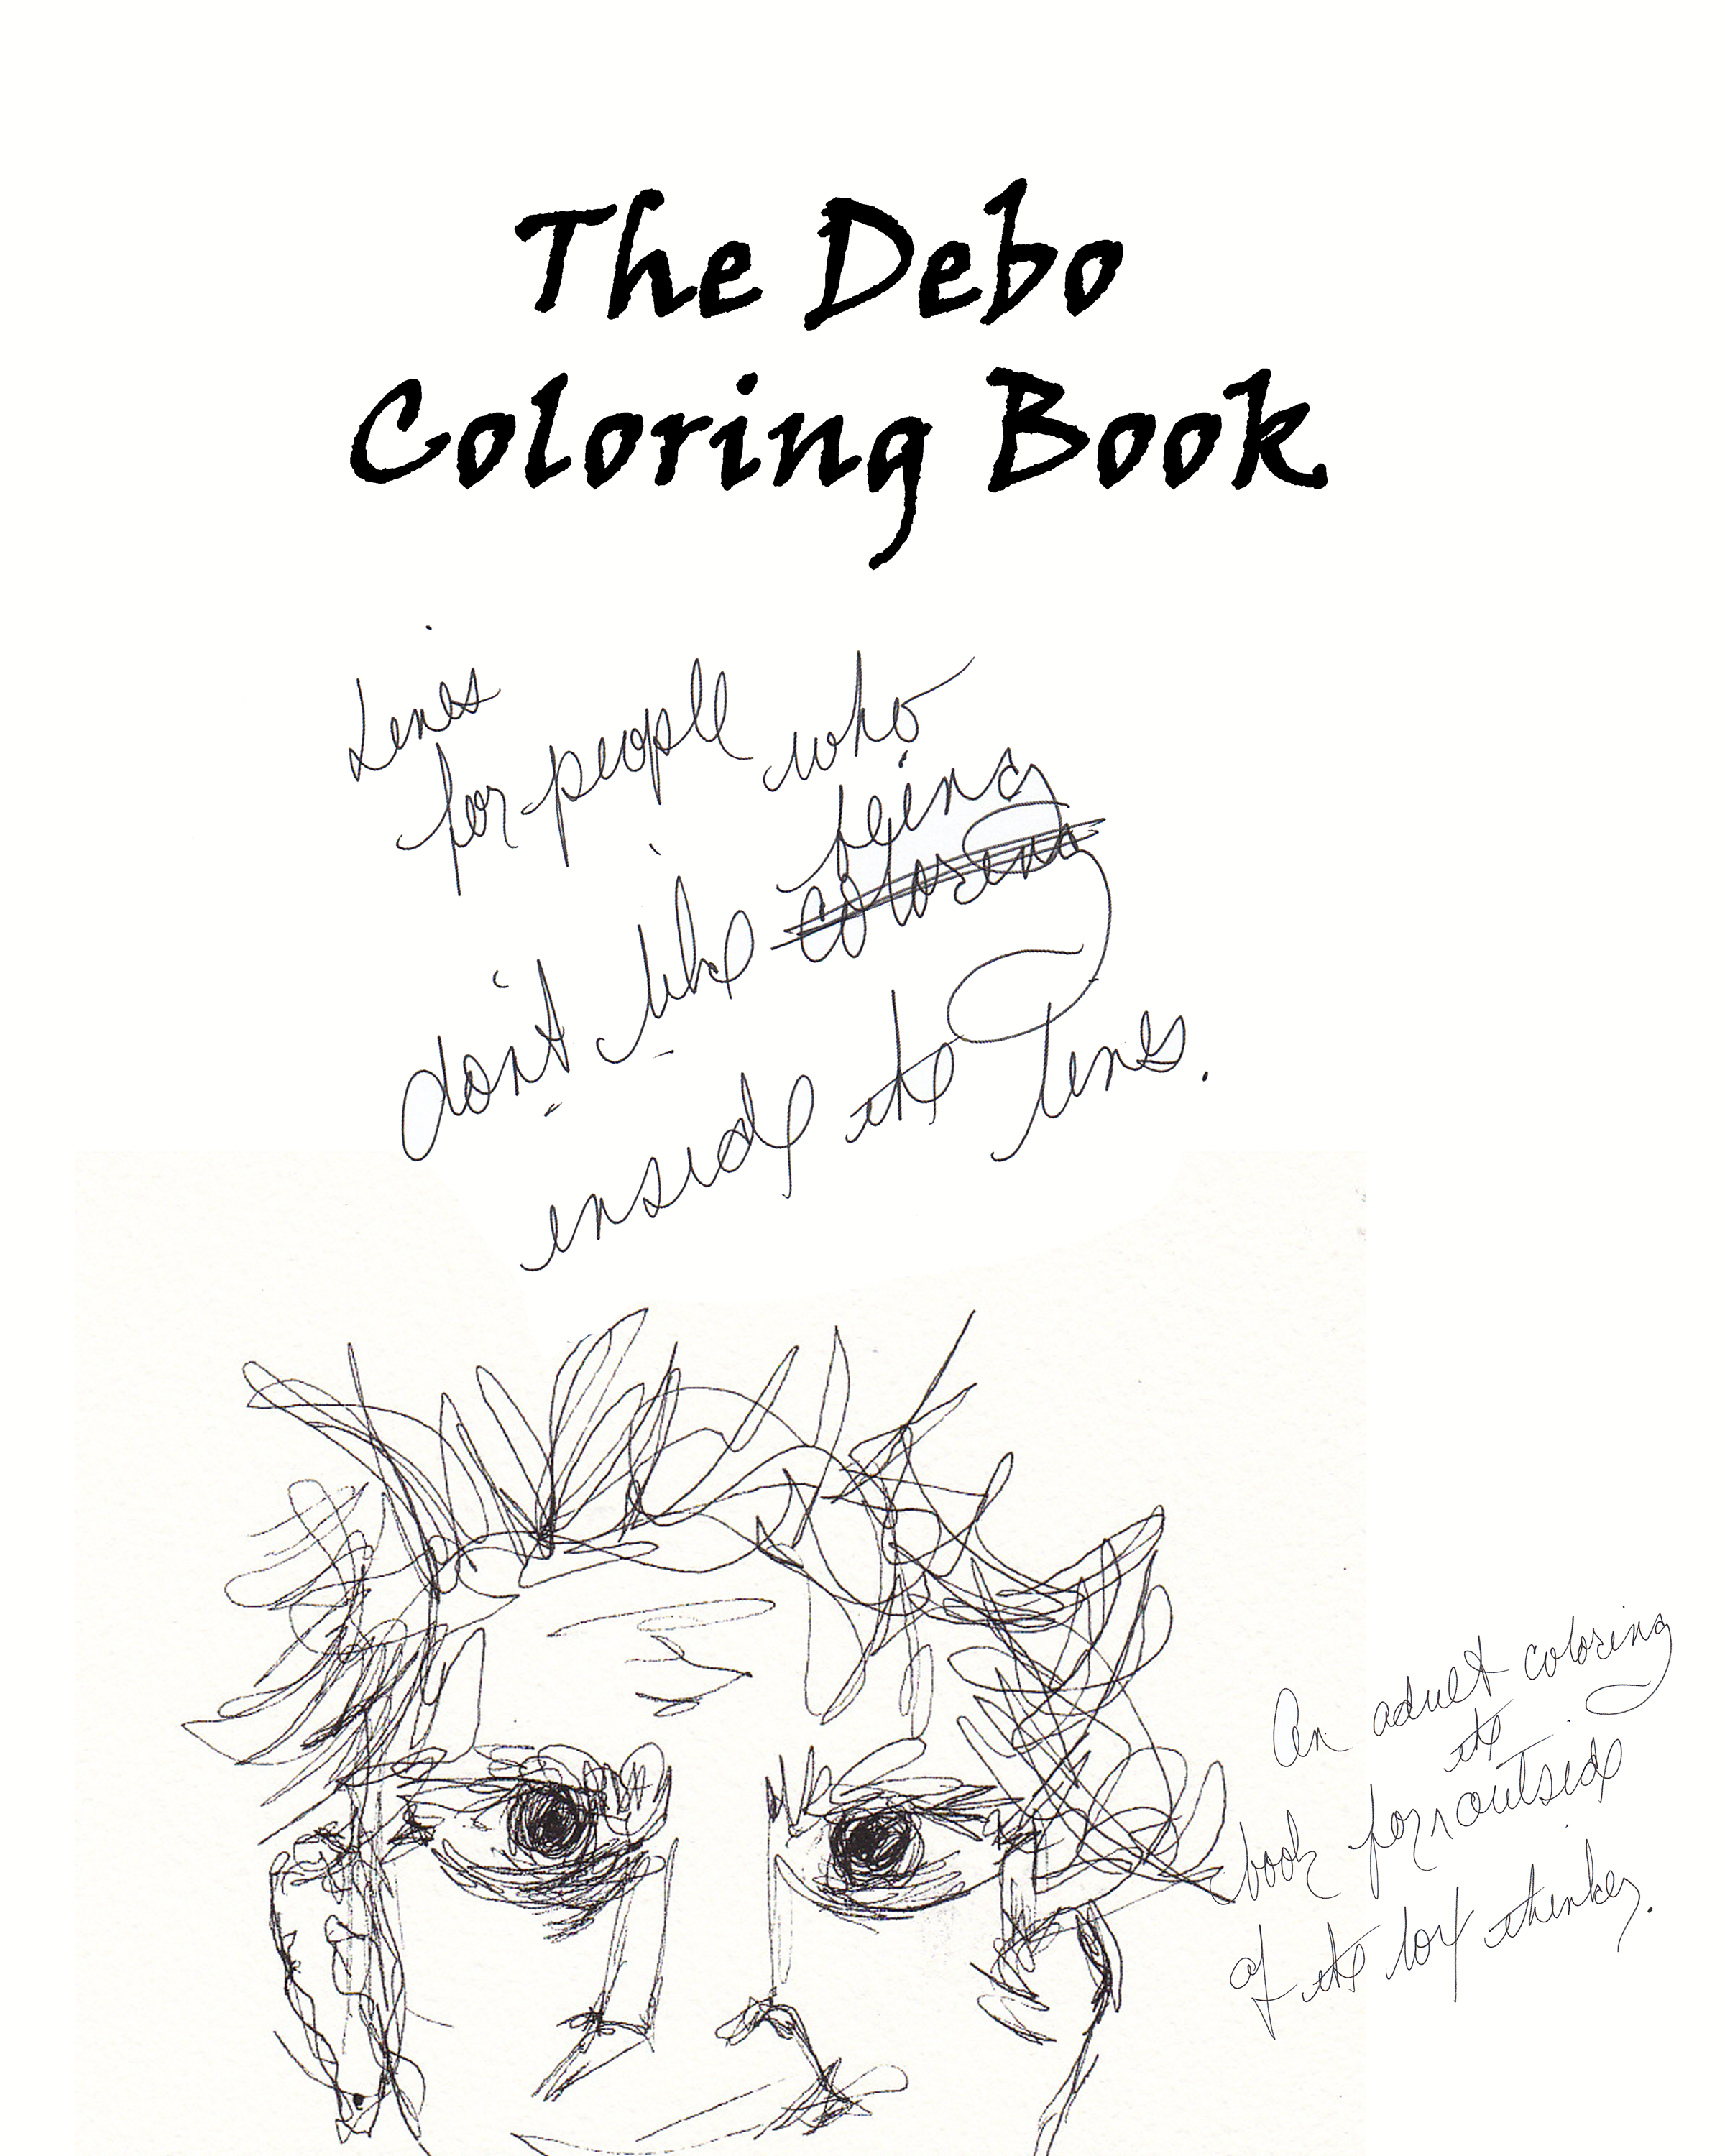 The coloring book project free download - The Coloring Book Project Free Download